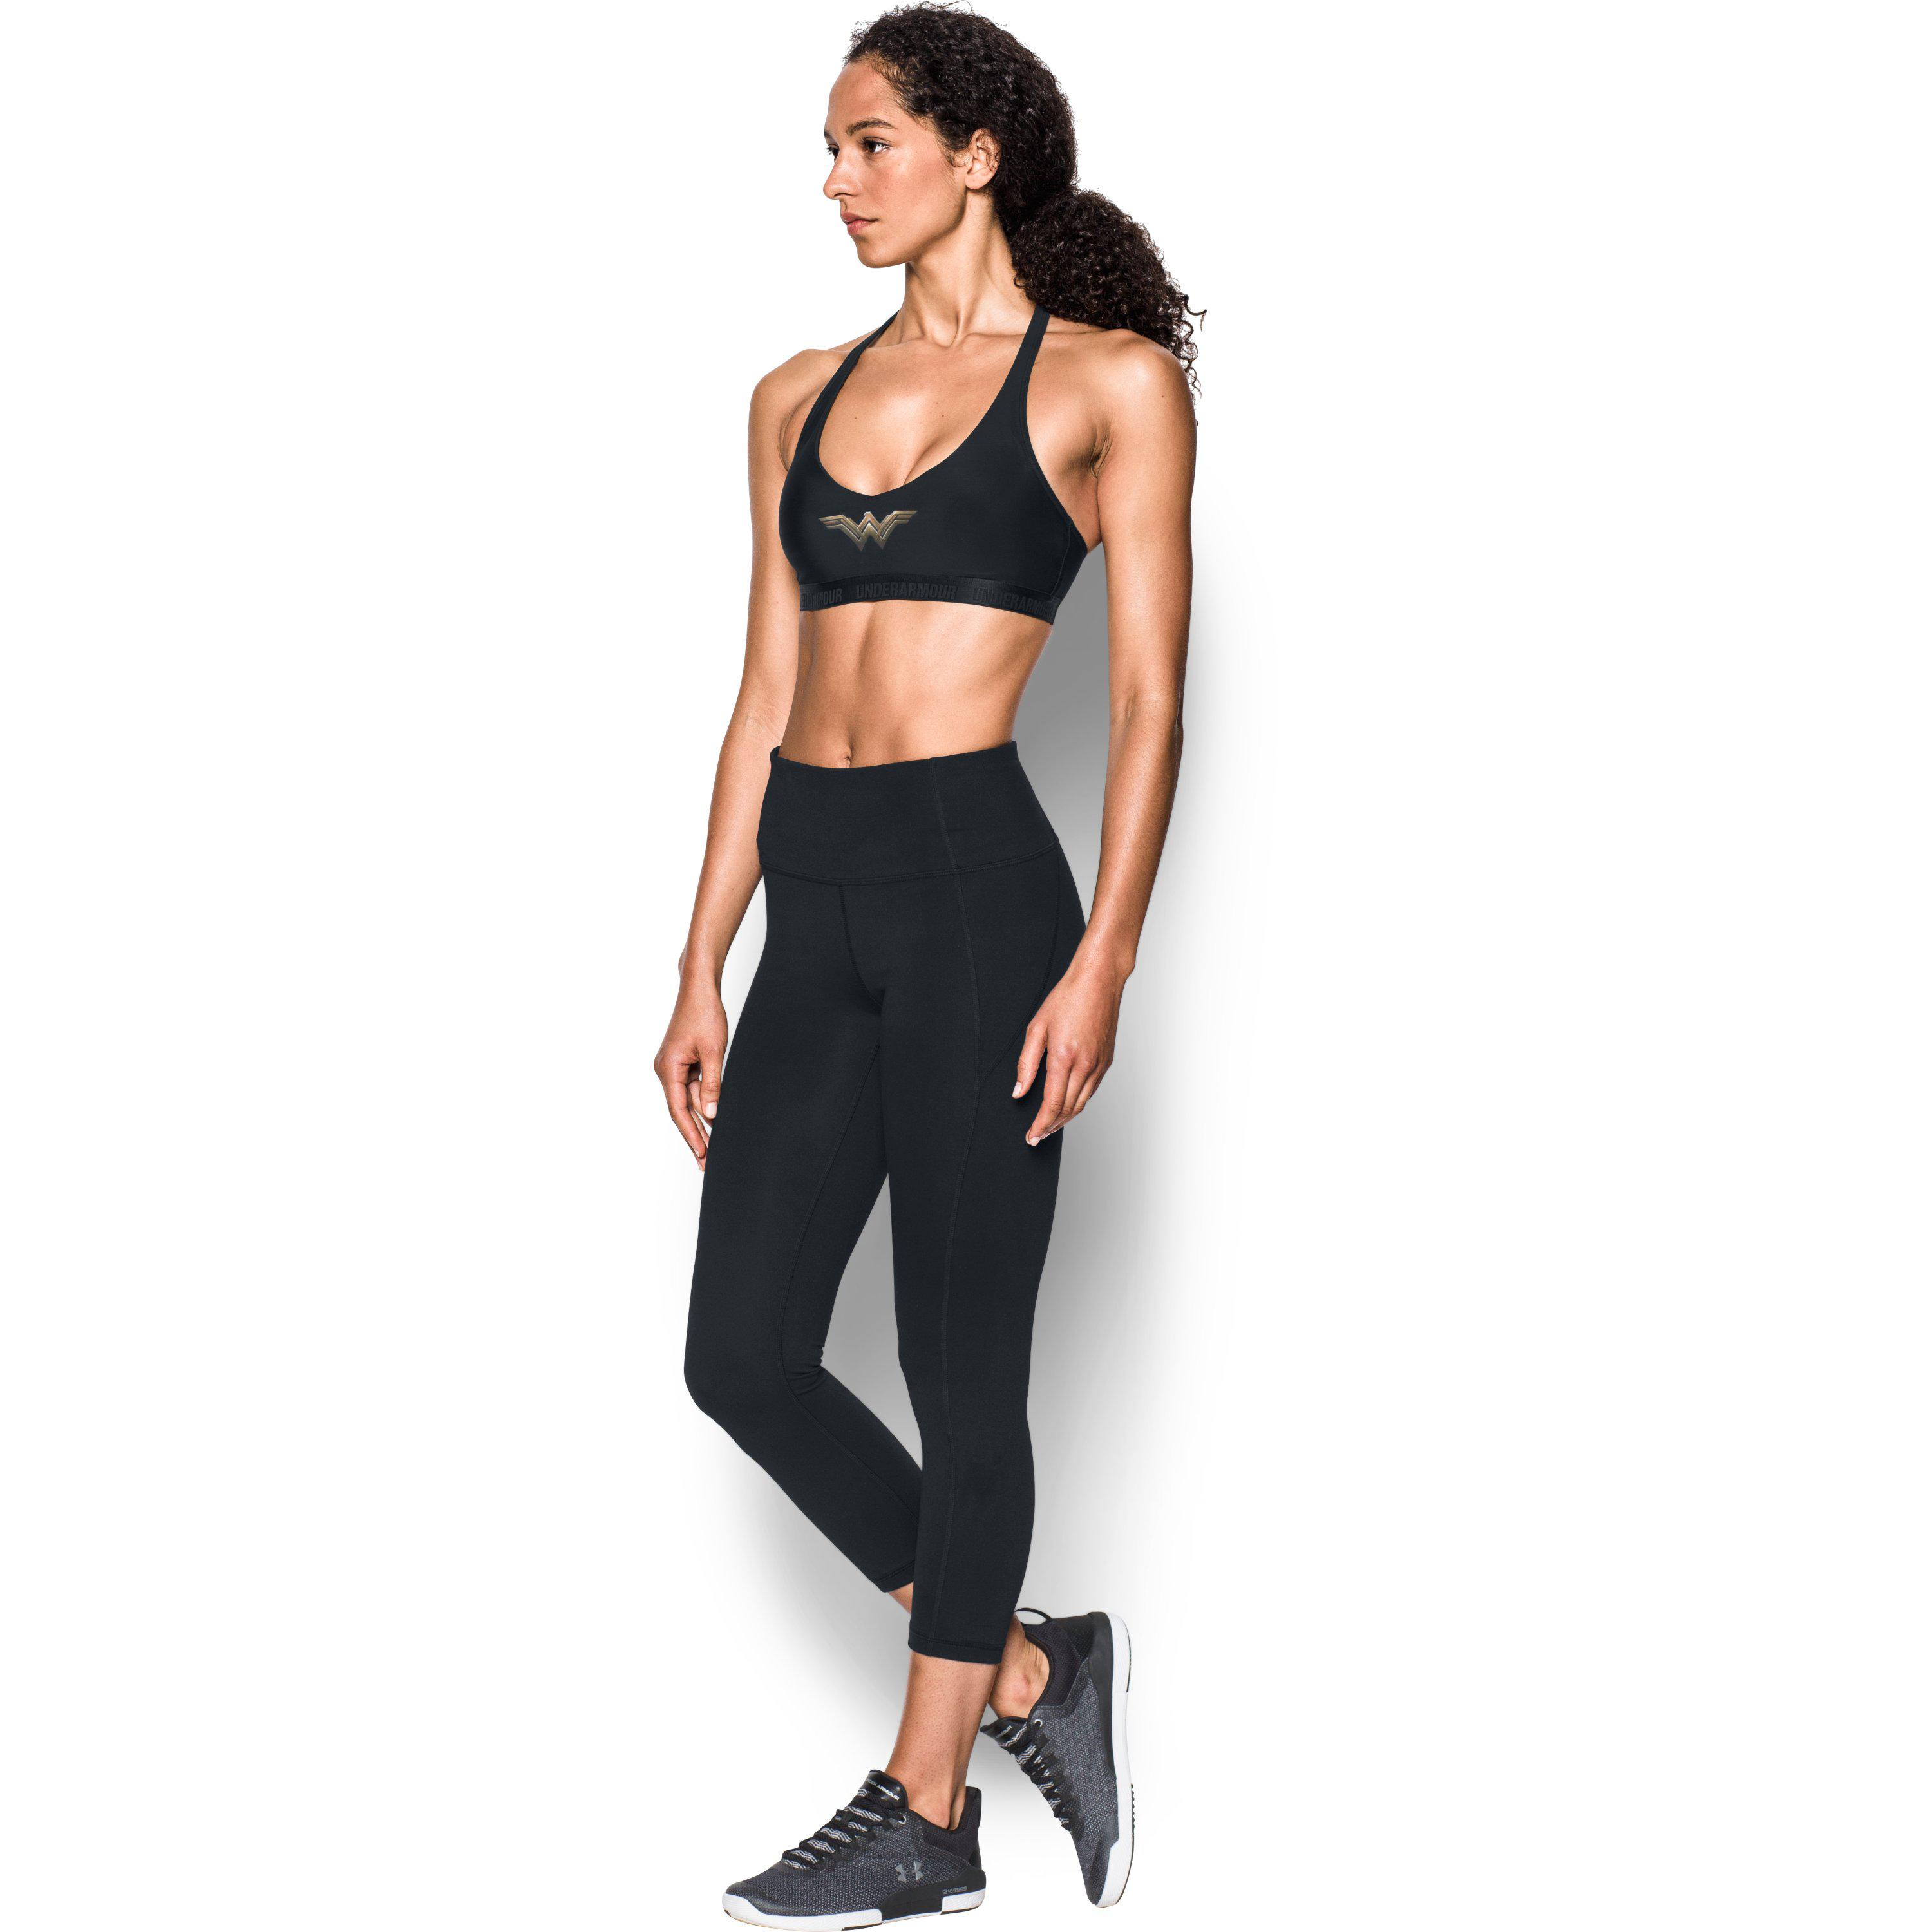 34174fd5b3d47 Lyst - Under Armour Women s ® Alter Ego Wonder Woman Strappy Low ...